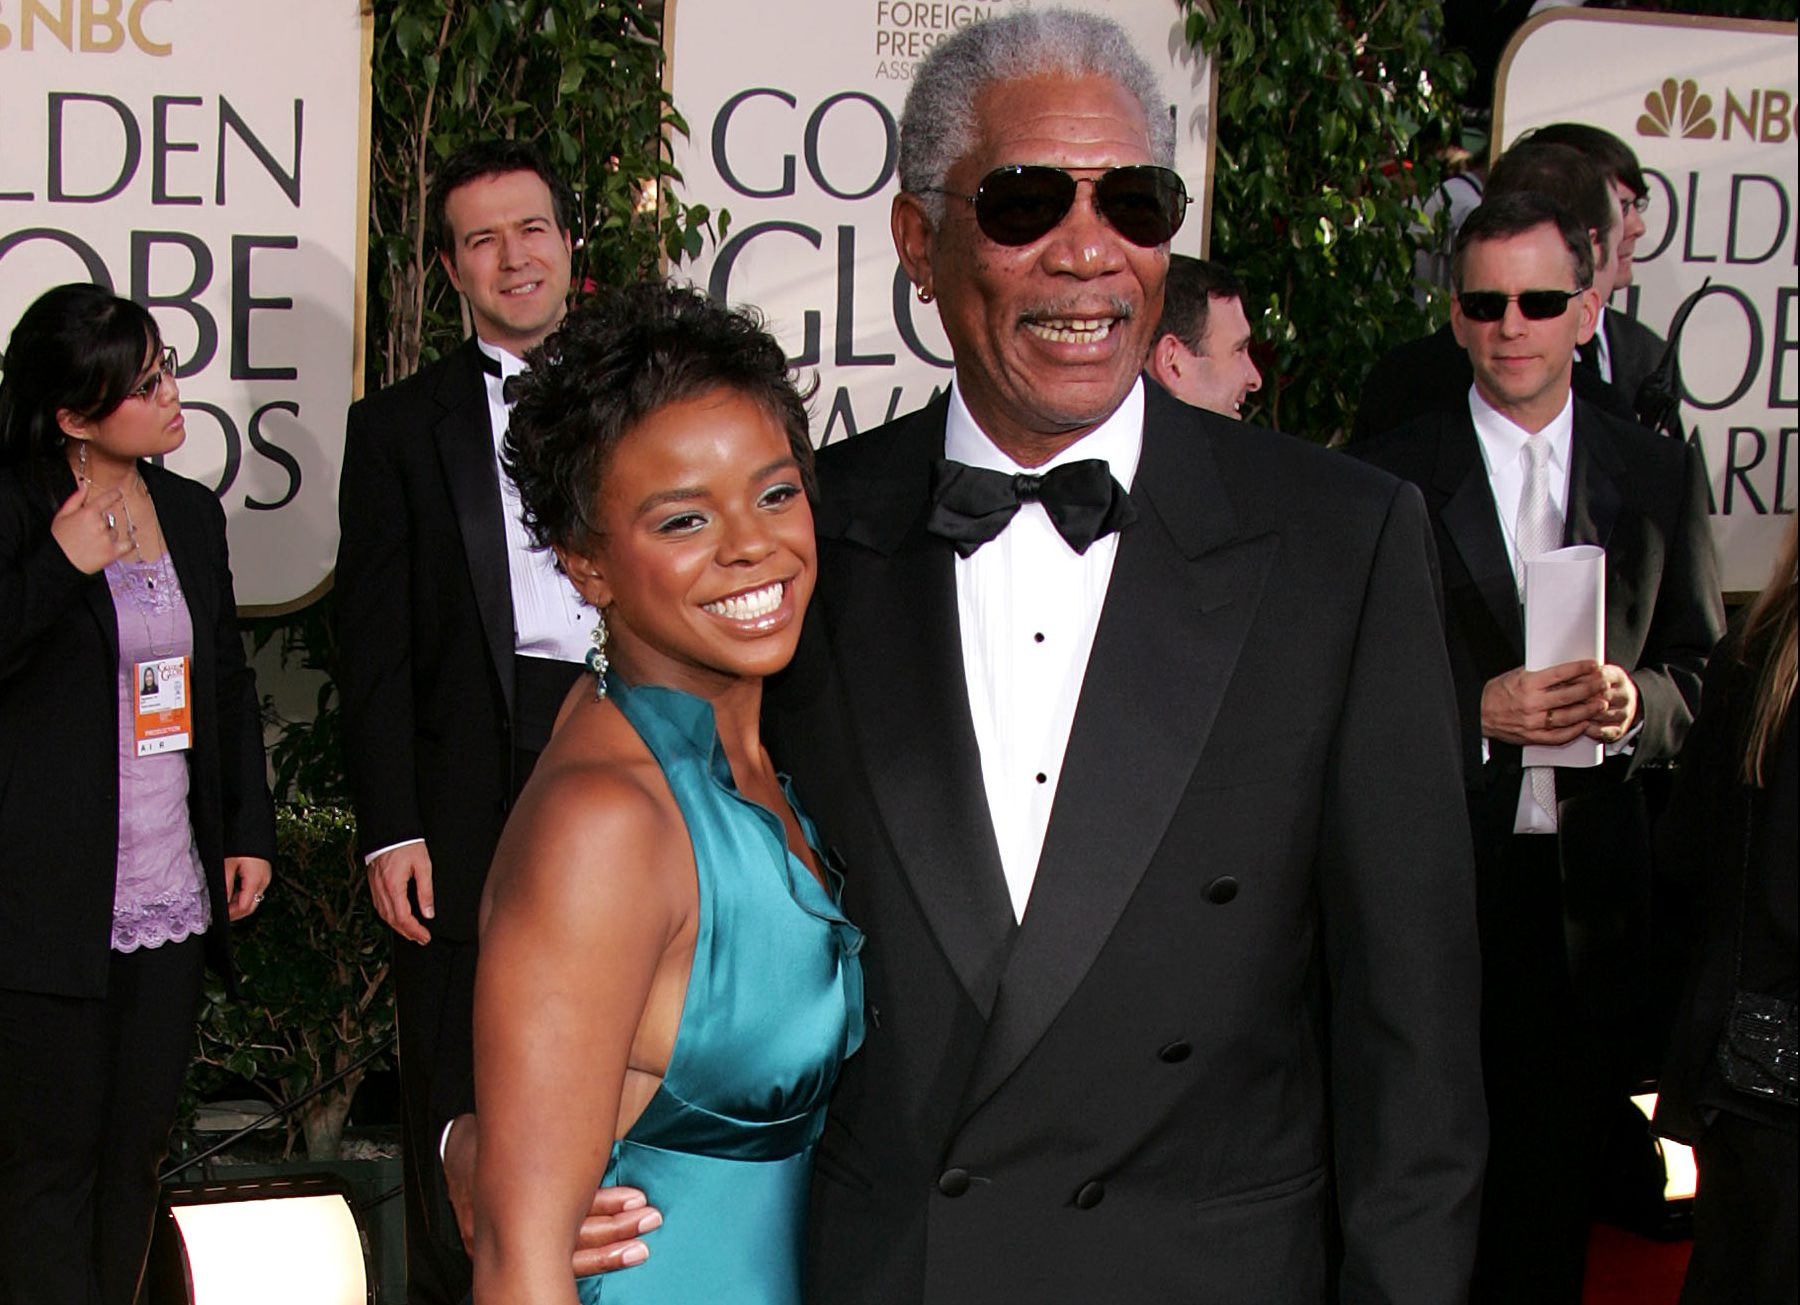 Morgan Freeman 'had sexual relationship with step-granddaughter' alleges man on trial for her murder